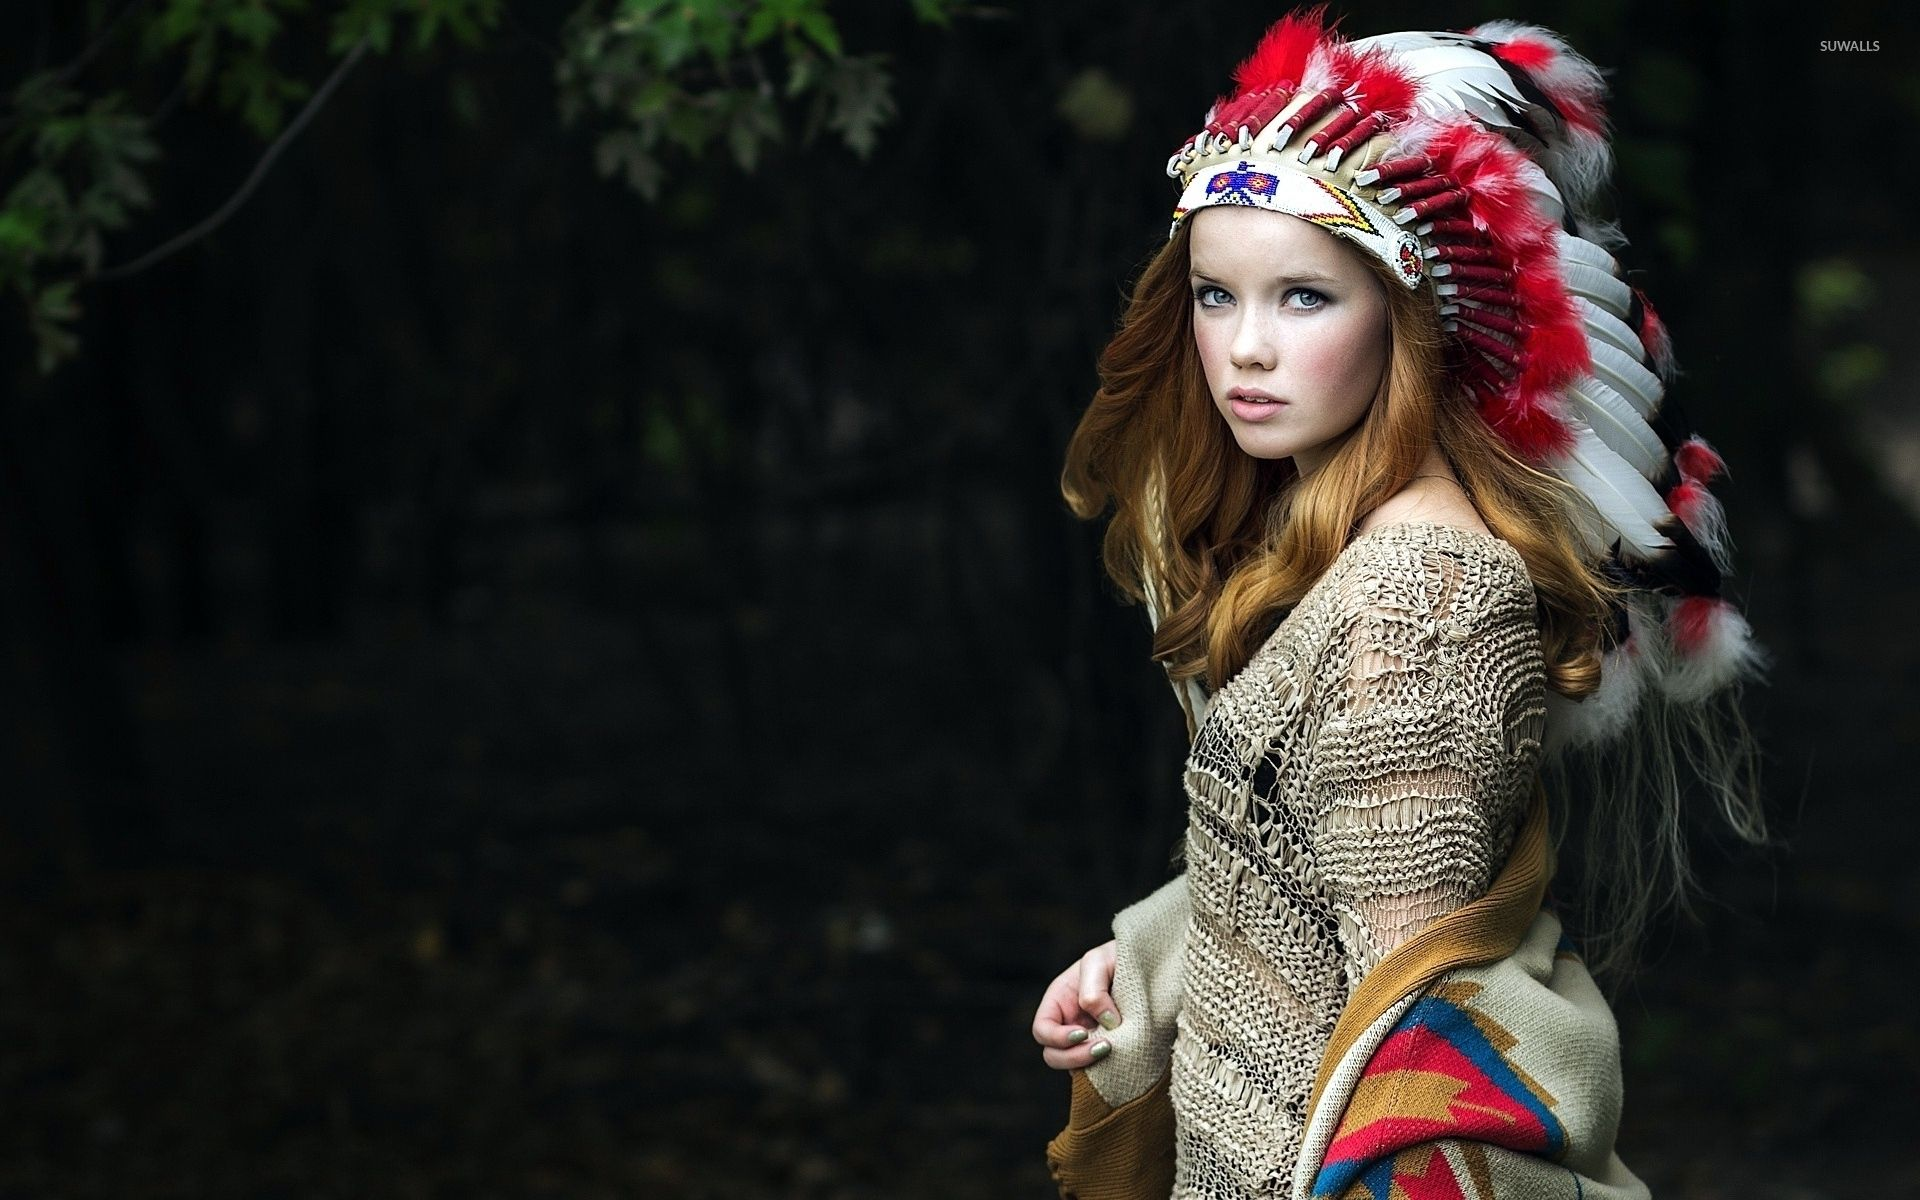 1920x1200 Beautiful girl in a native american costume wallpaper - Girl ...